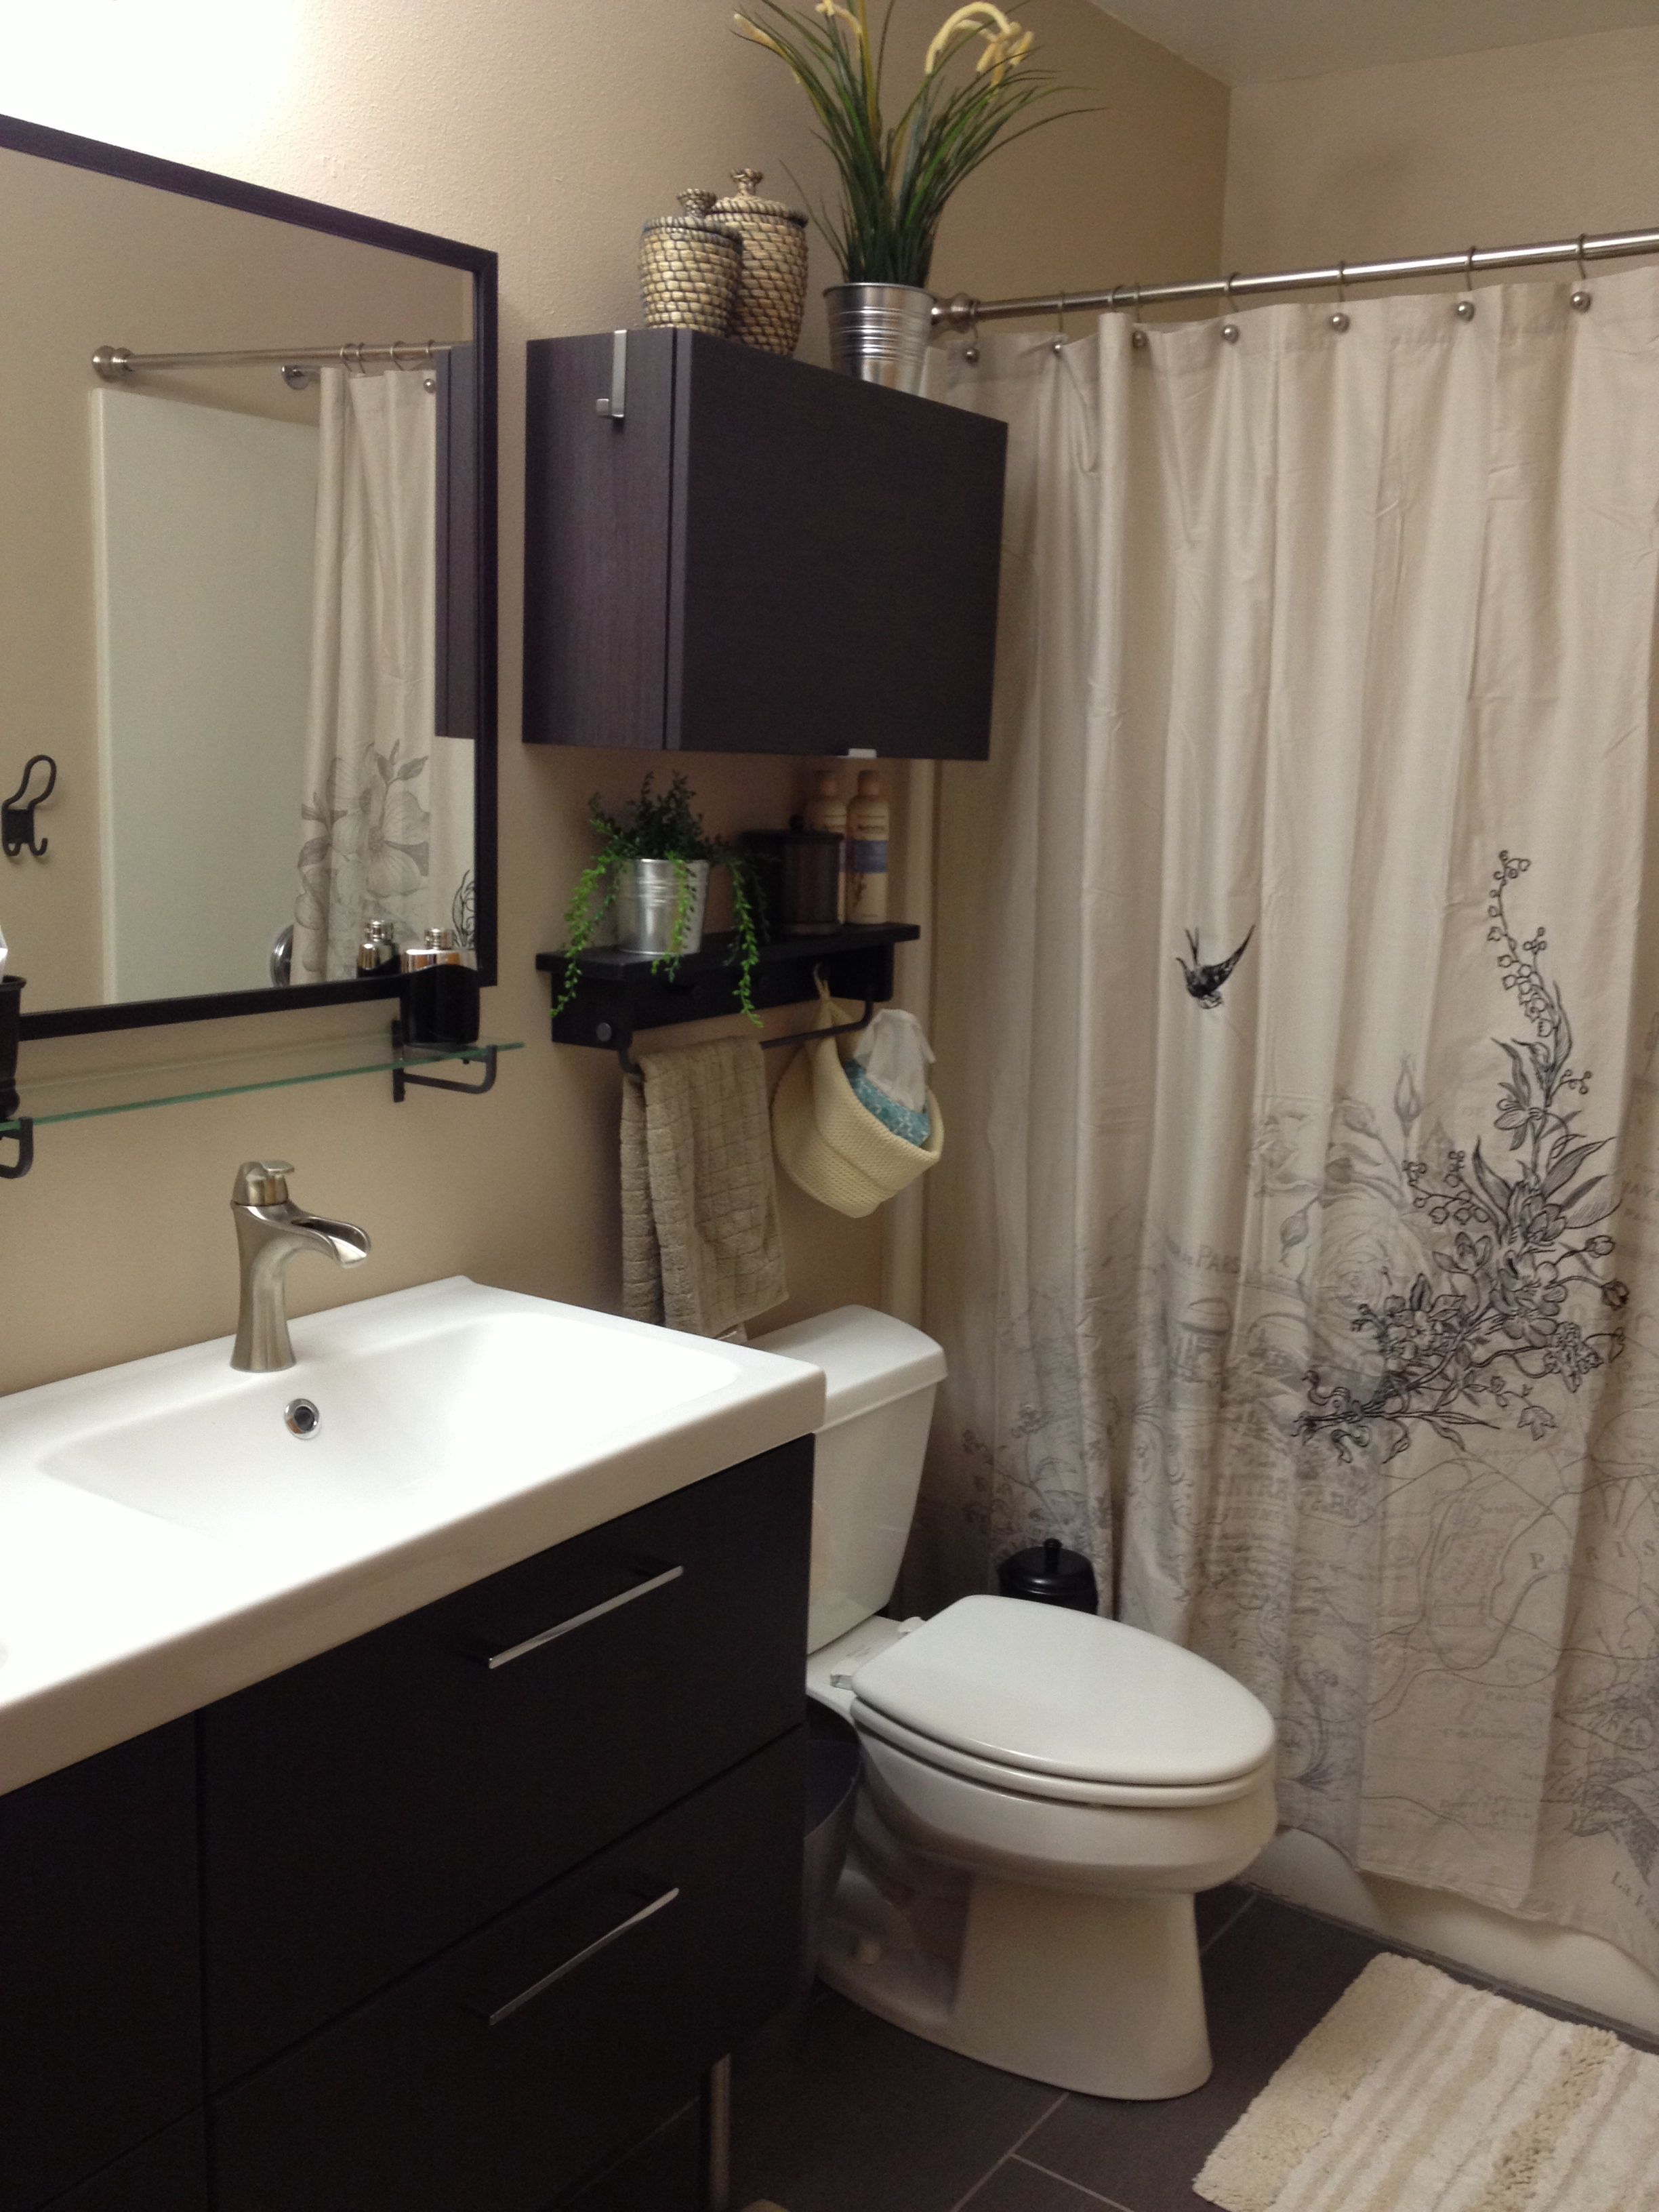 Pin By Andreanne Pena On Ikea Bathroom Renovation 1 Bathroom Design Ikea Bathroom Bathroom Renovation